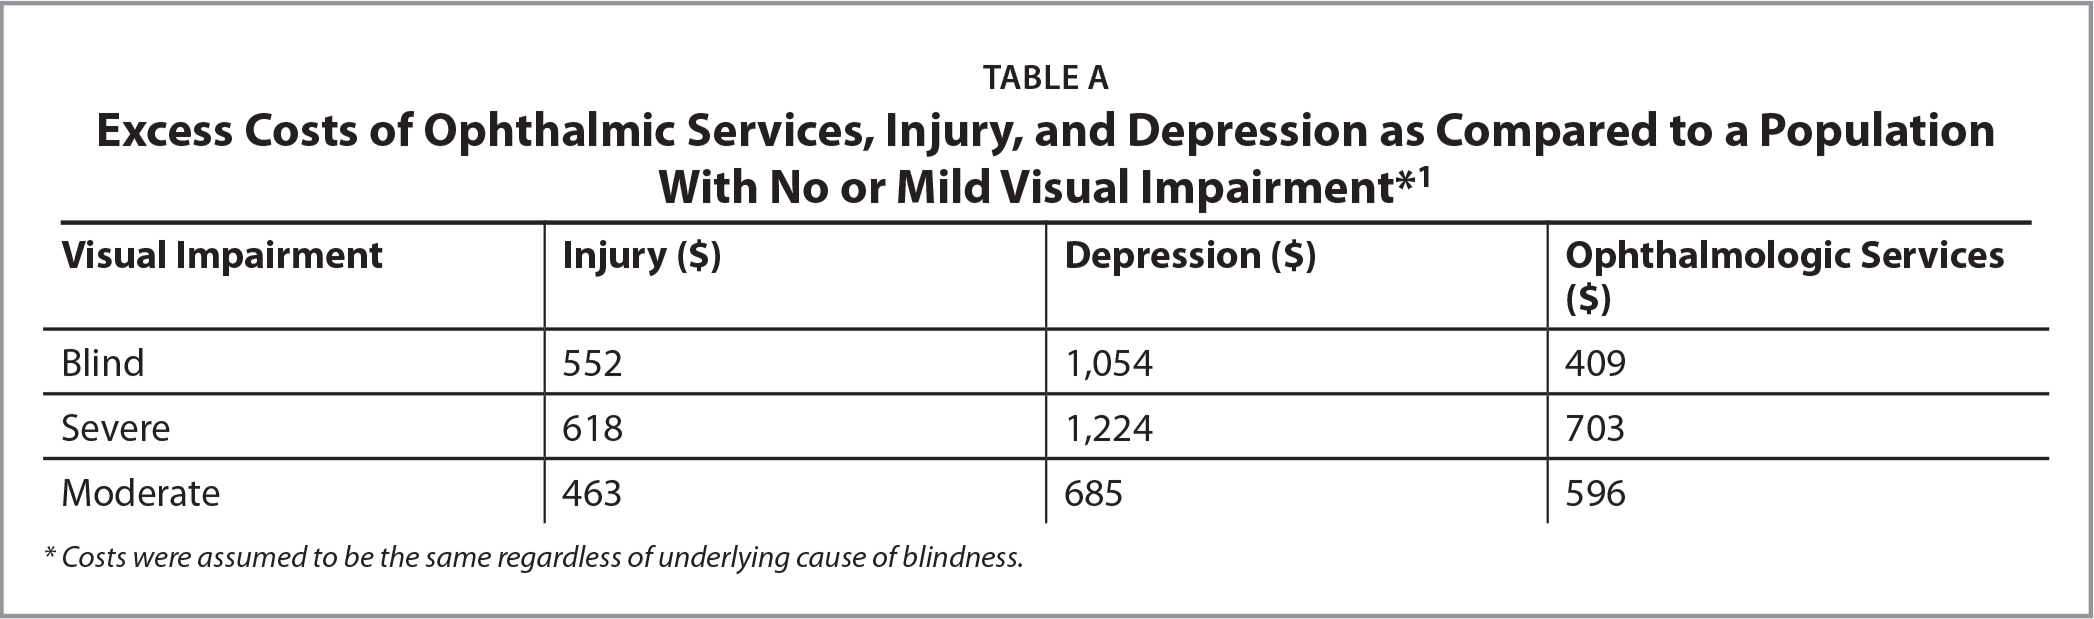 Excess Costs of Ophthalmic Services, Injury, and Depression as Compared to a Population With No or Mild Visual Impairment*1